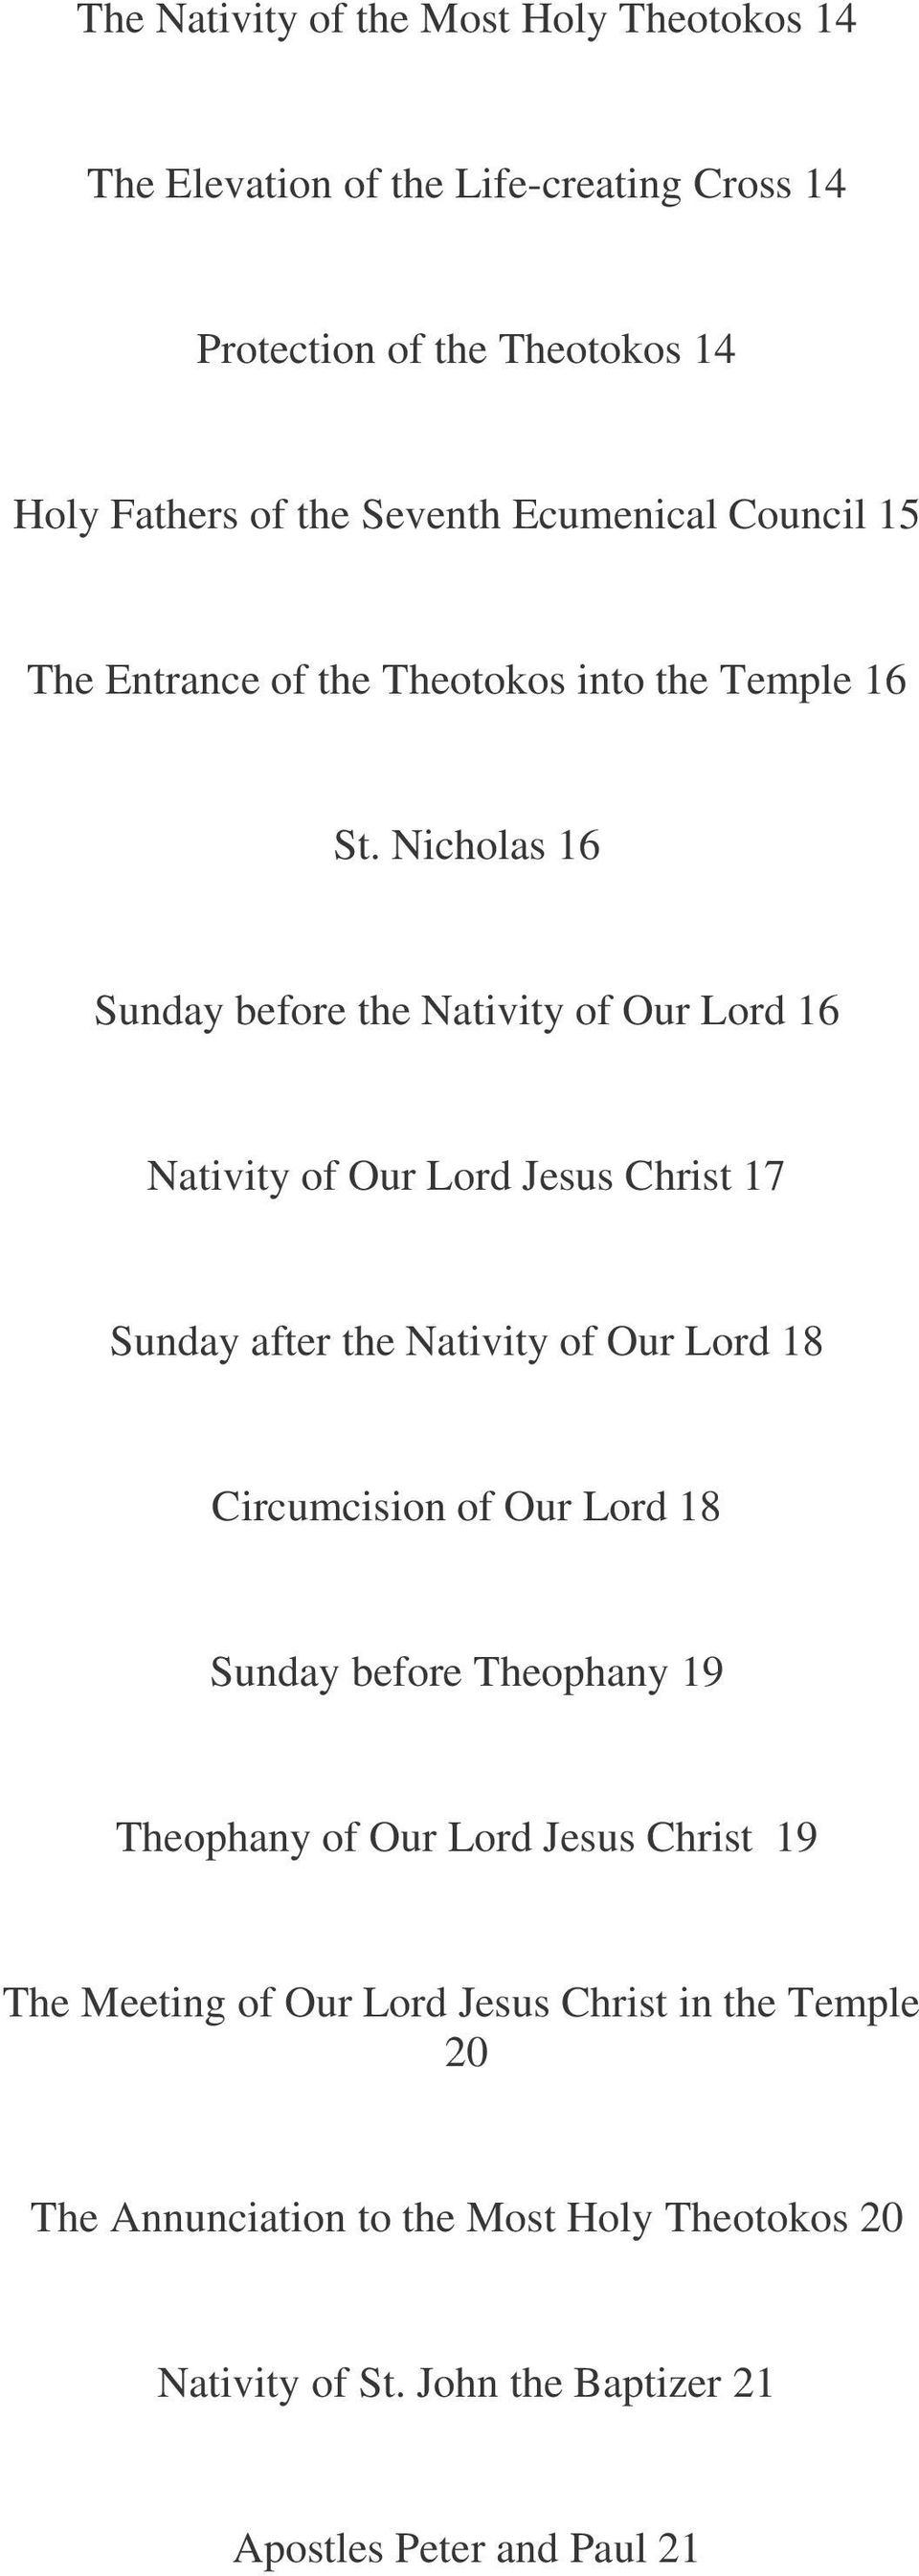 Nicholas 16 Sunday before the Nativity of Our Lord 16 Nativity of Our Lord Jesus Christ 17 Sunday after the Nativity of Our Lord 18 Circumcision of Our